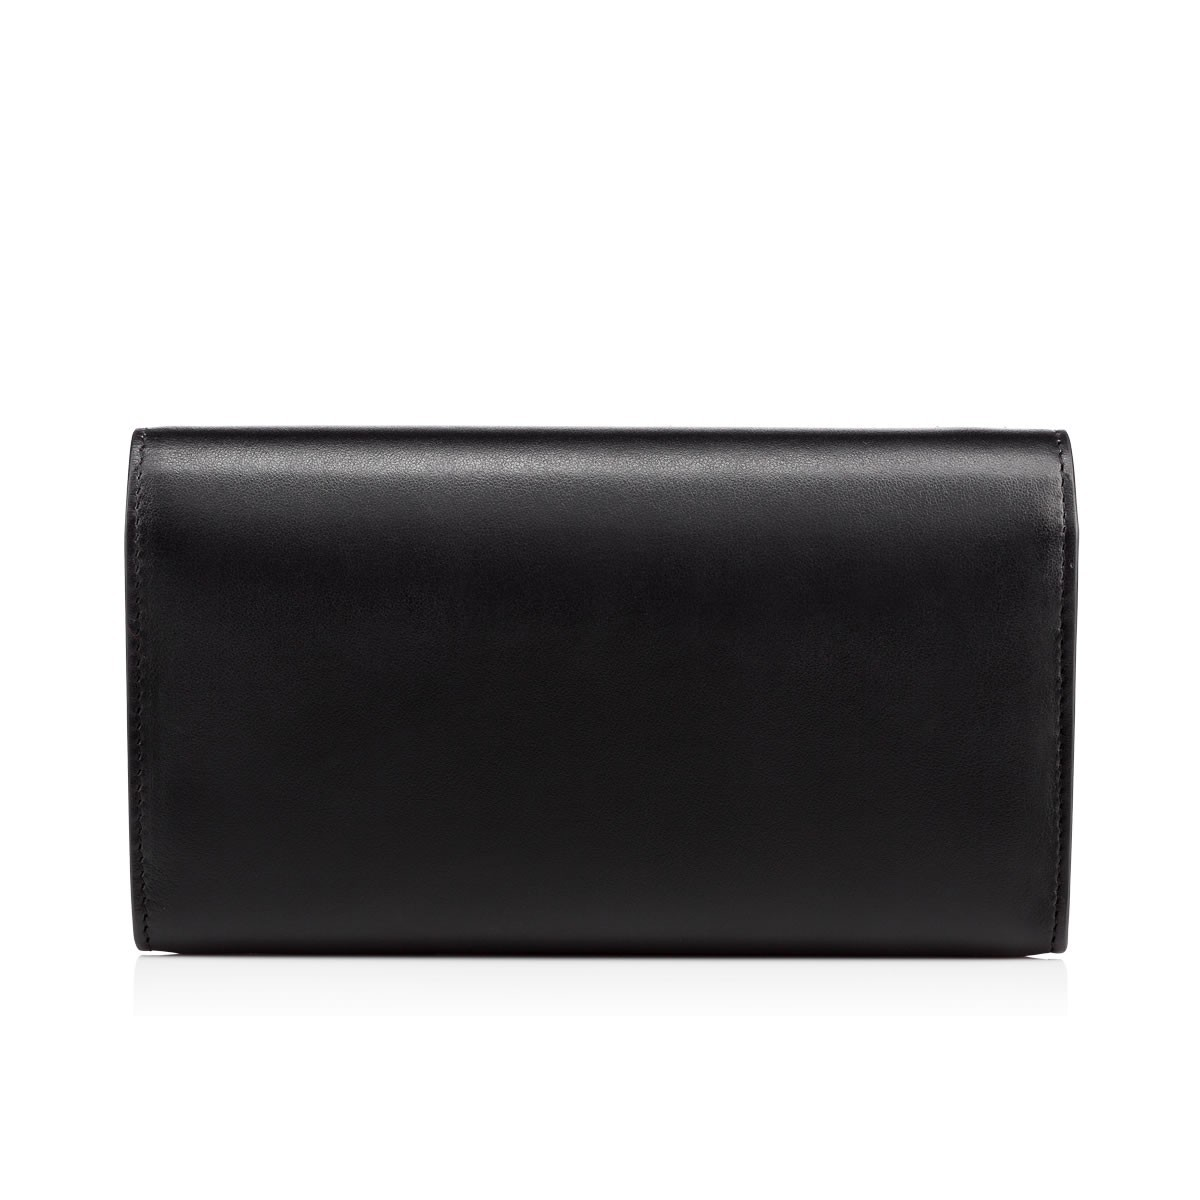 Macaron Continental Wallet With Flap[ロンドンデパート新商品]